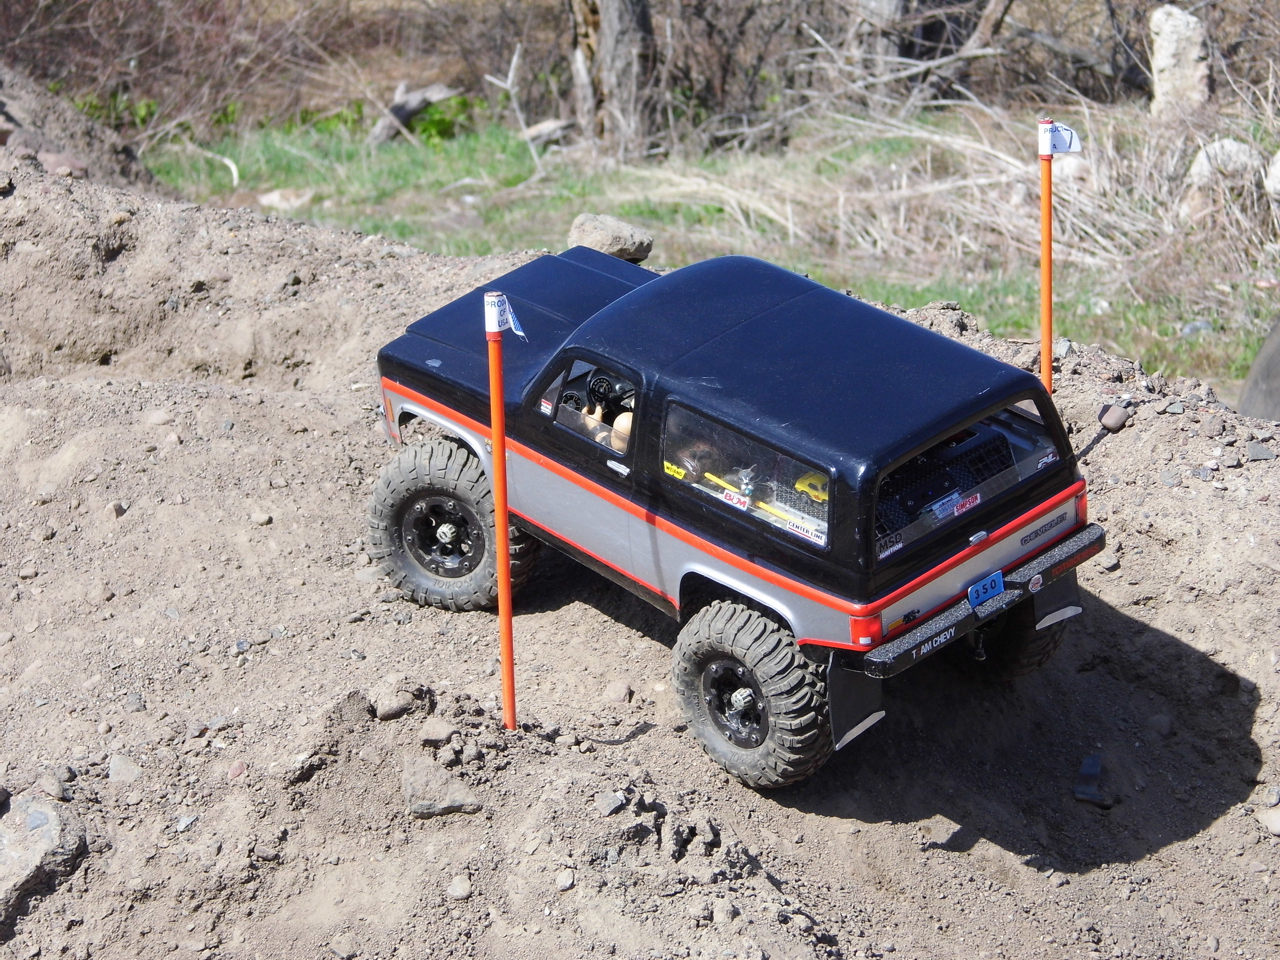 rc toy truck with What Is Scale Rc Scale  P Crawling And Rules on What Is Scale Rc Scale  p Crawling And Rules likewise 28c 2056a Hummer H2 10 Green likewise Kyosho Red Bull Edge 540 Ep Arf 356 P besides New Bright Hummer H3 6 Volt RC Truck Review 001 also Bruder Cement Mixer.